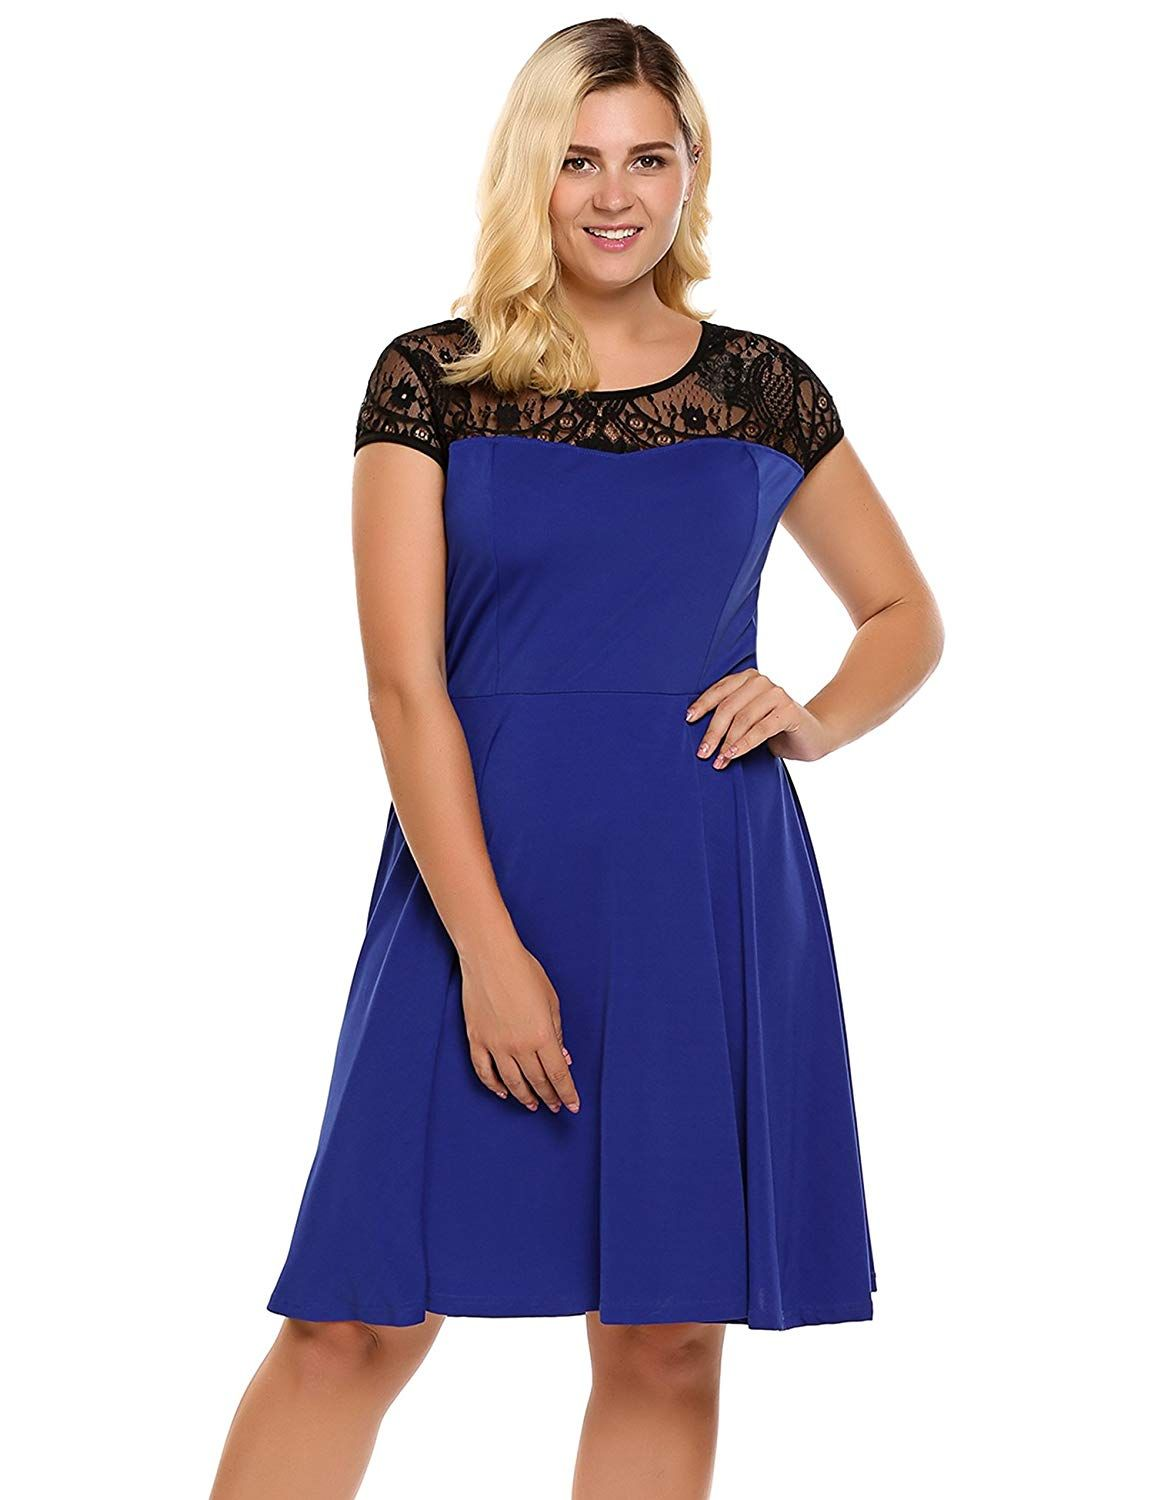 b19e8040249 IN VOLAND Womens Plus Size Lace Cap Sleeve Fit and Flare Vintage Party Dress  - Ladies High Waist Floral Lace Tea Dress   See this great product.